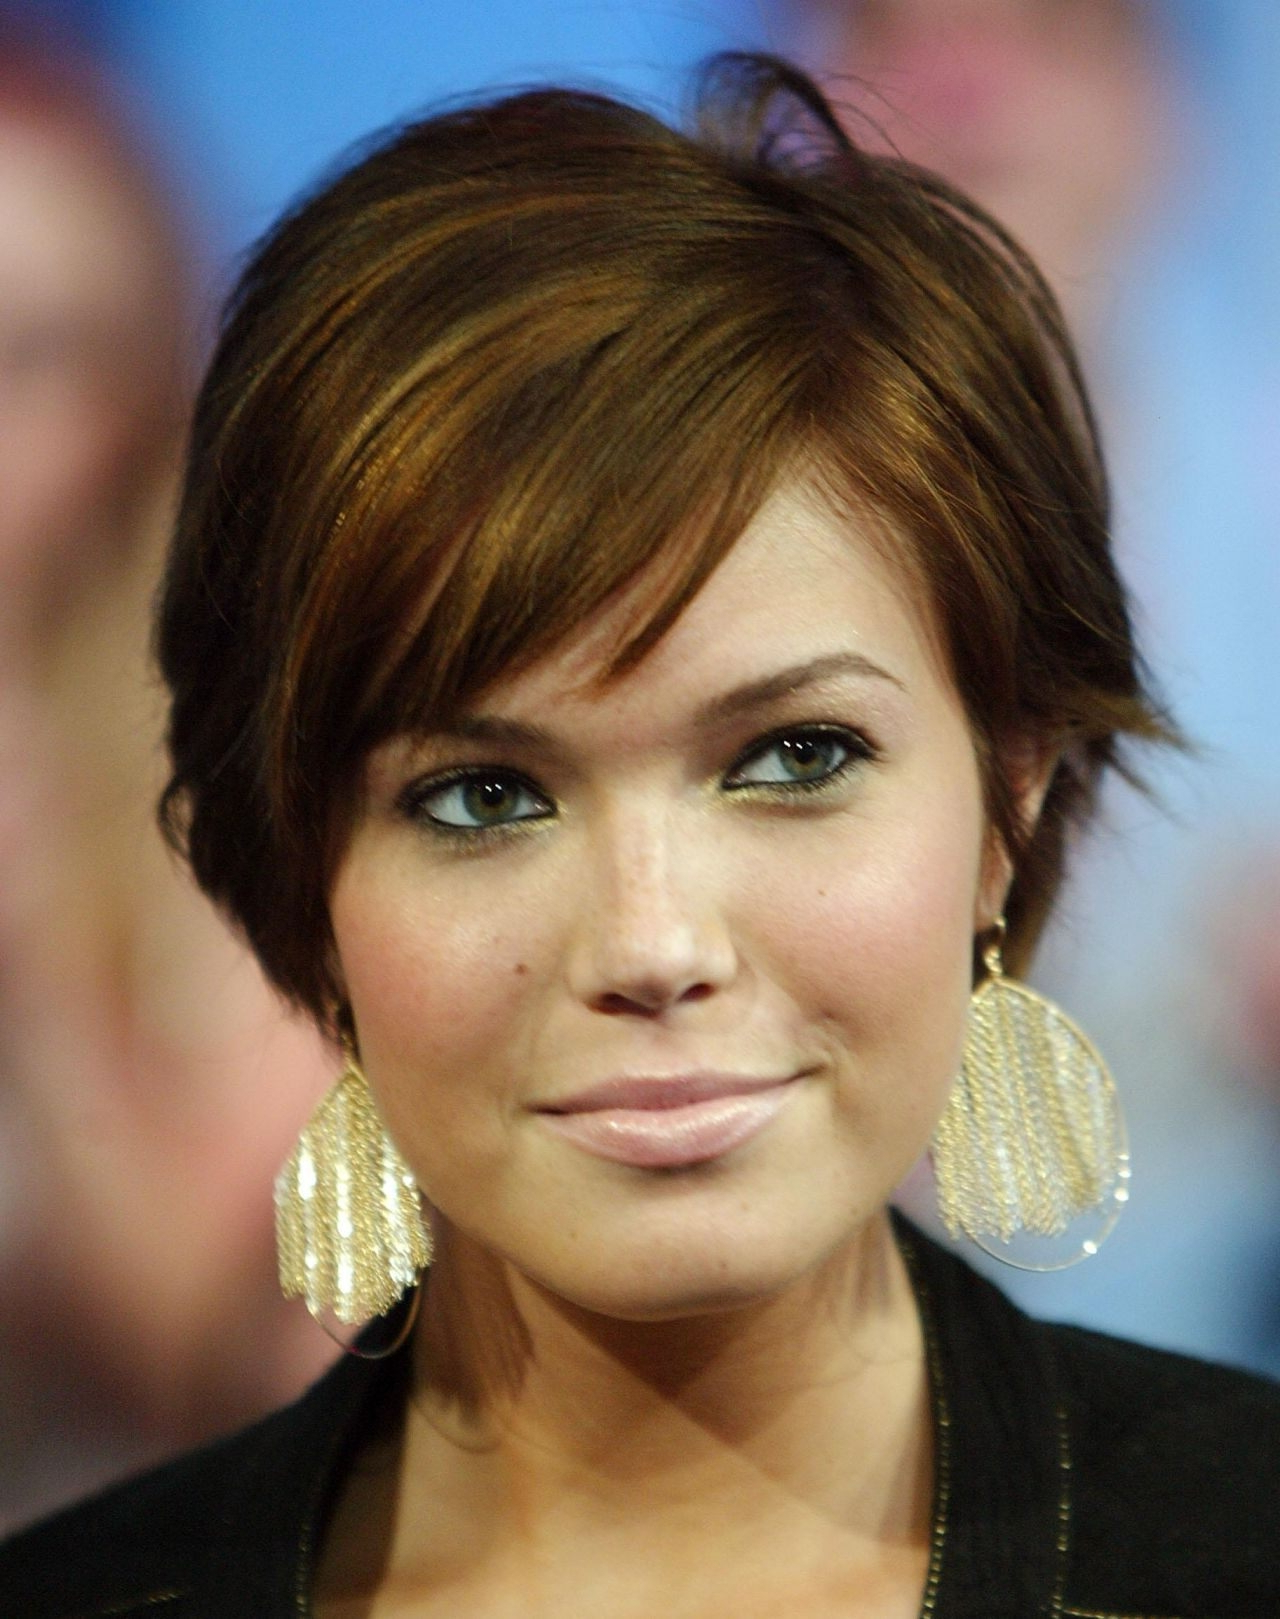 Short Hairstyle For Round Face Girl Intended For Short Haircuts Women Round Face (View 18 of 25)